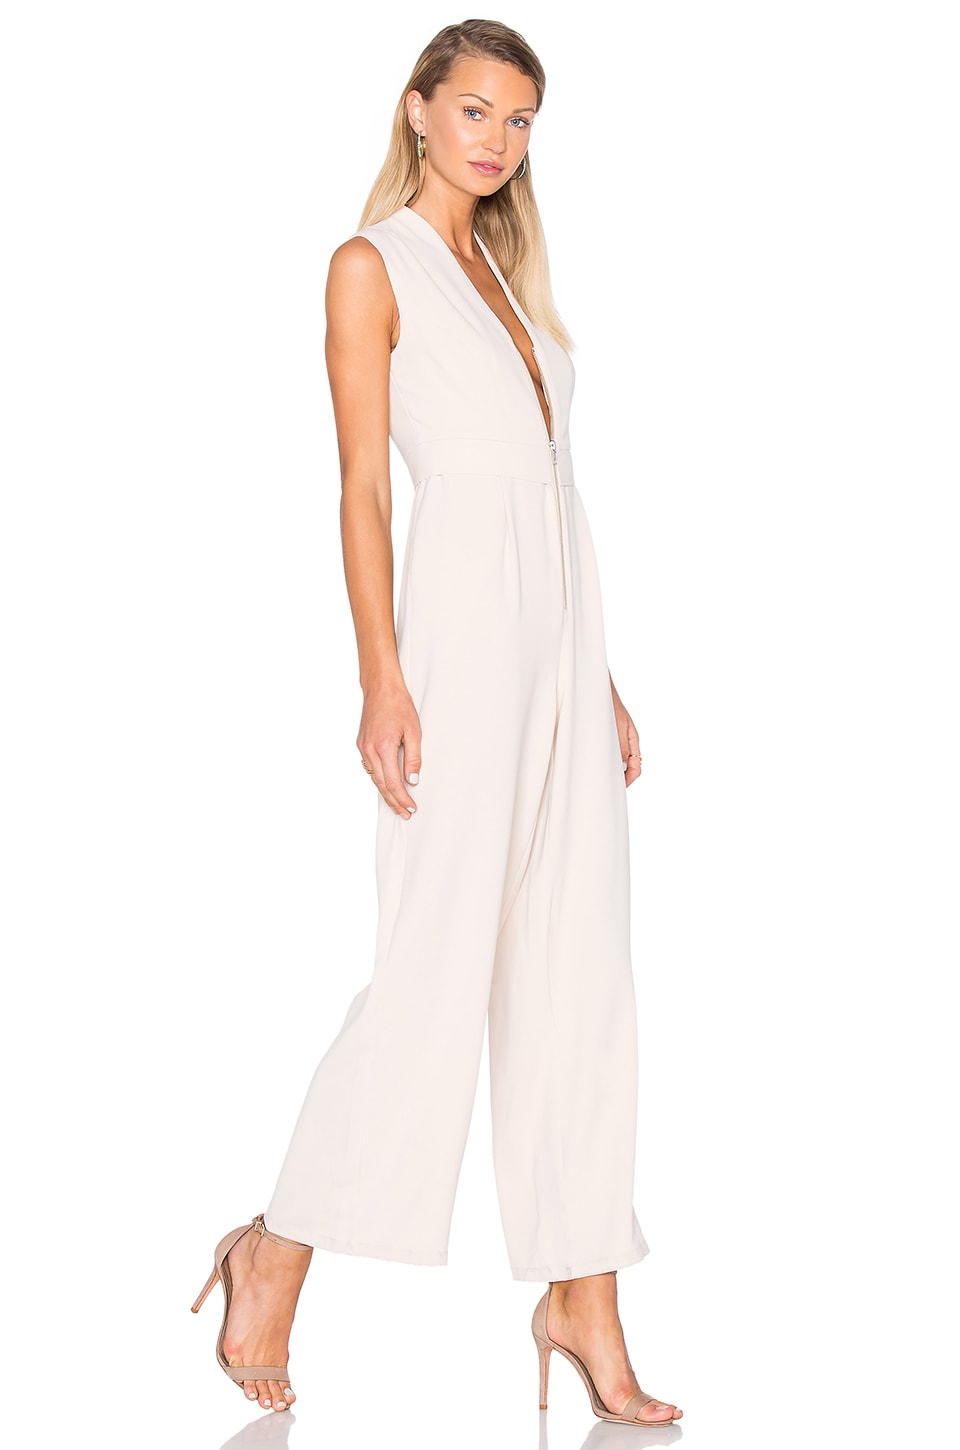 Wild World Jumpsuit by Finders Keepers